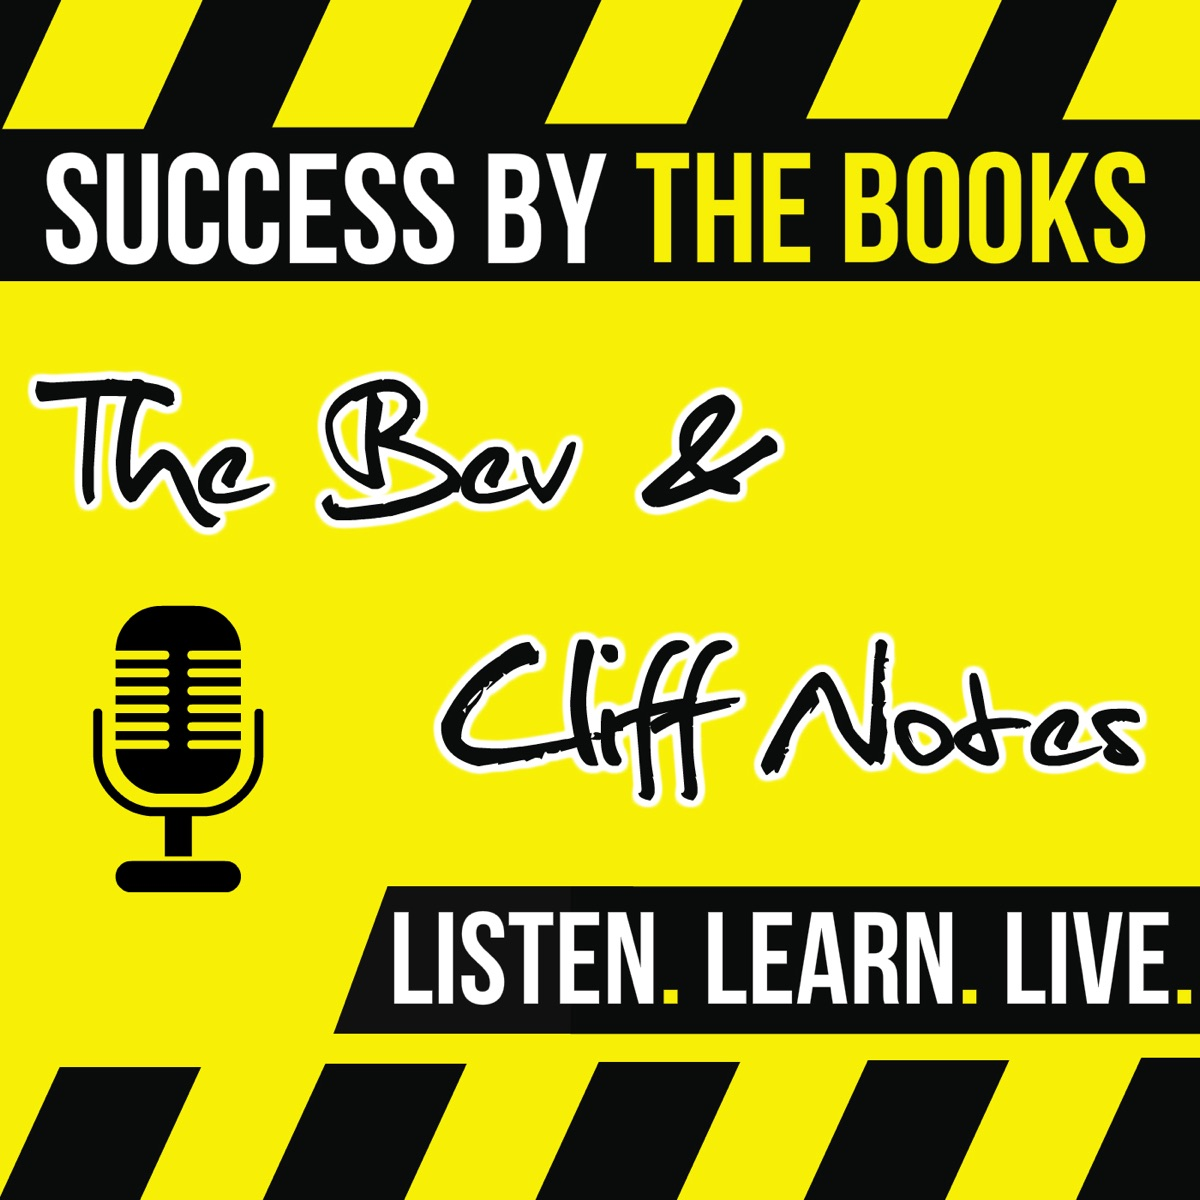 Success By The Books: The Bev and Cliff Notes